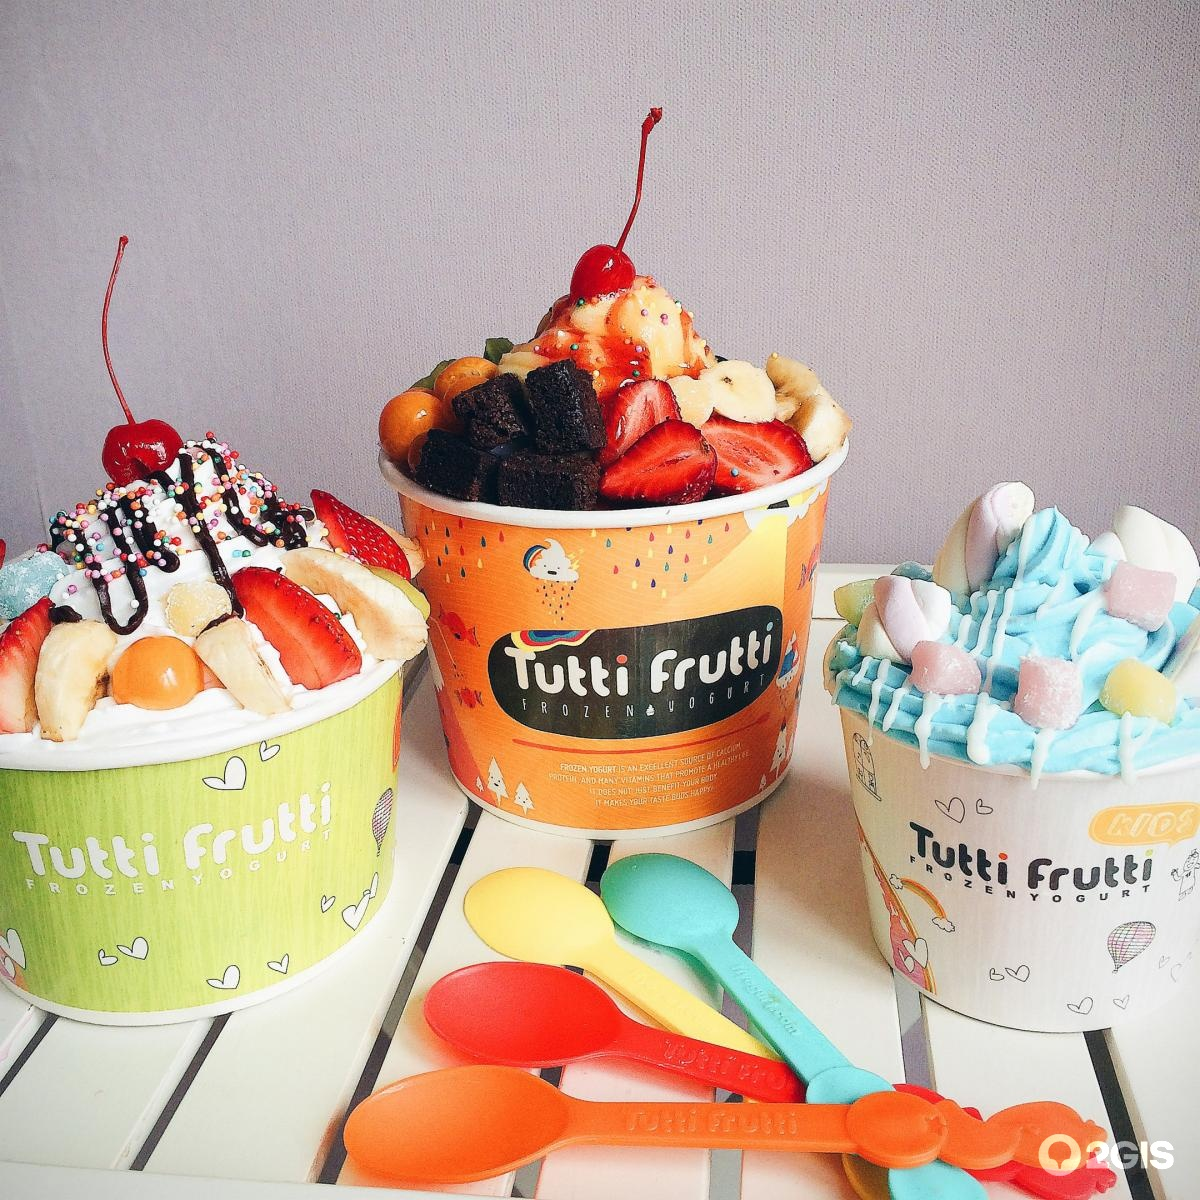 tutti frutti I'd been singing 'tutti-frutti' for years, but it never struck me as a song you'd record little richard being as wrong as one can be (.